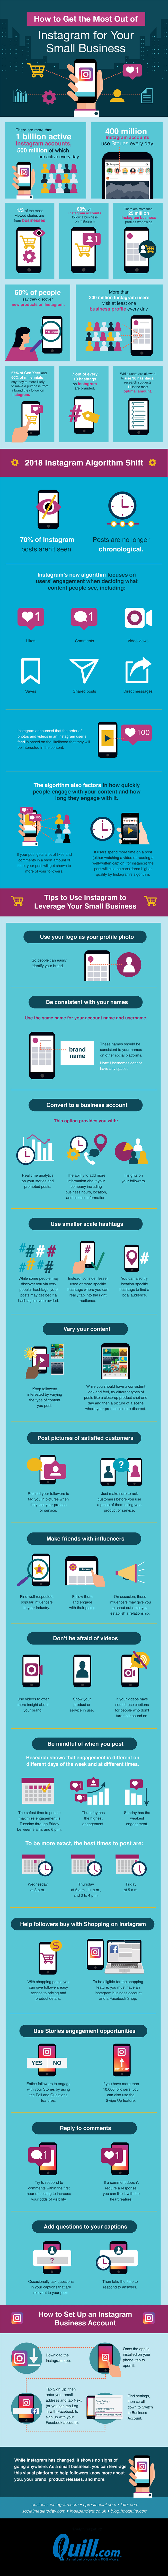 Infographic outlines stats and tips for Instagram marketing